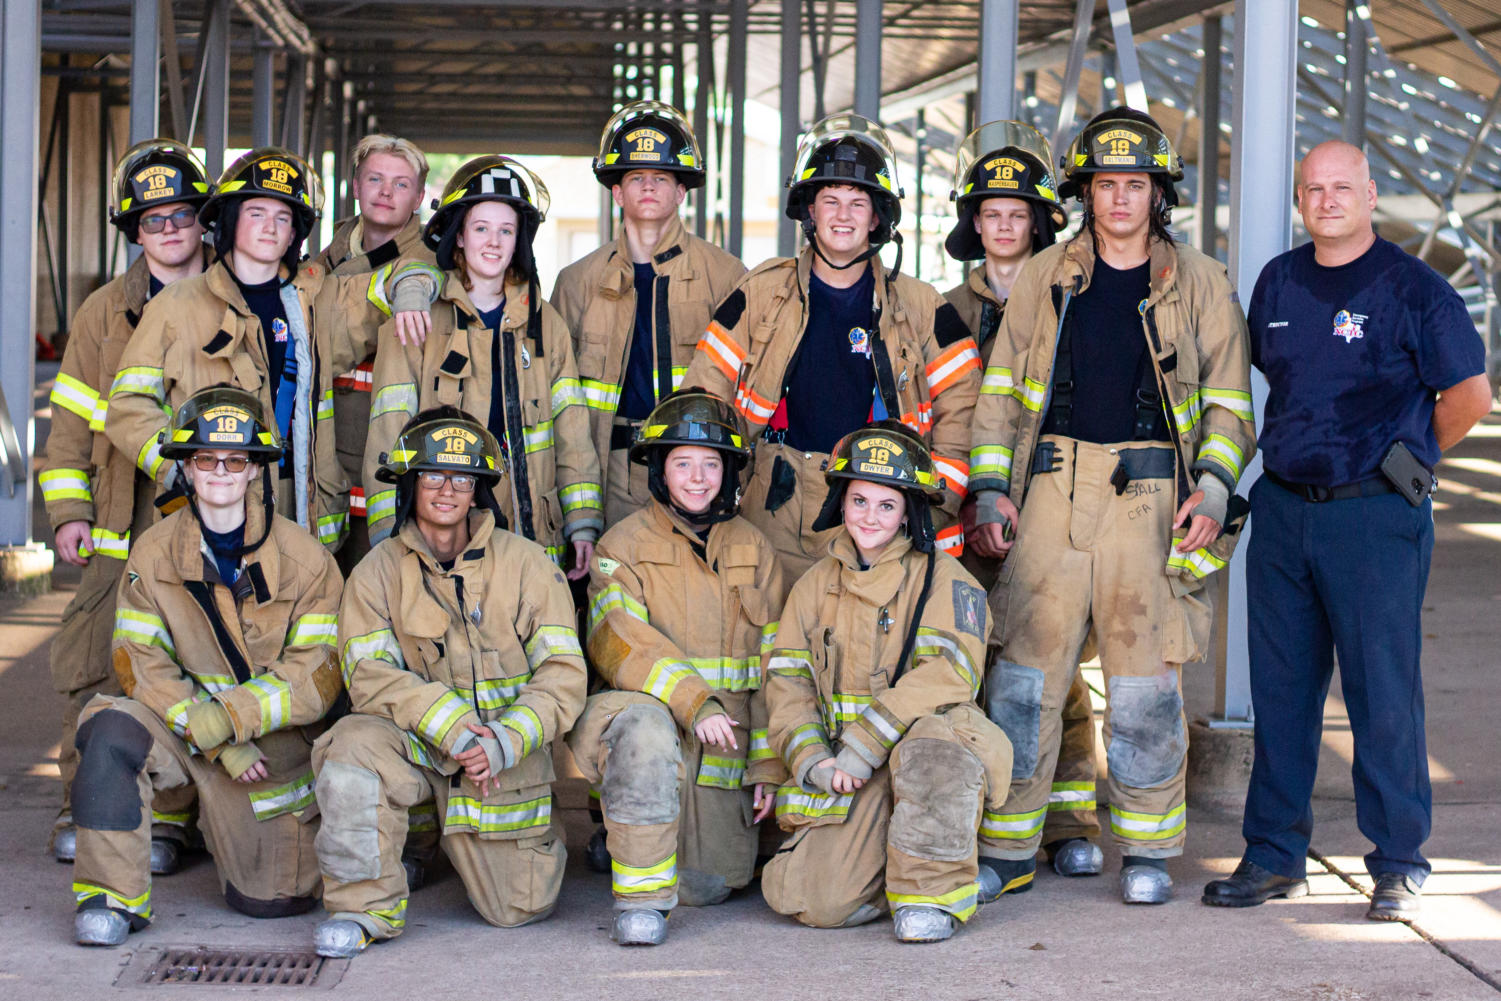 The firefighting program gathered for a group photo after practicing forcible entry, which included multiple ways to pry open an almost 300 pound door jammed with pieces of wood.